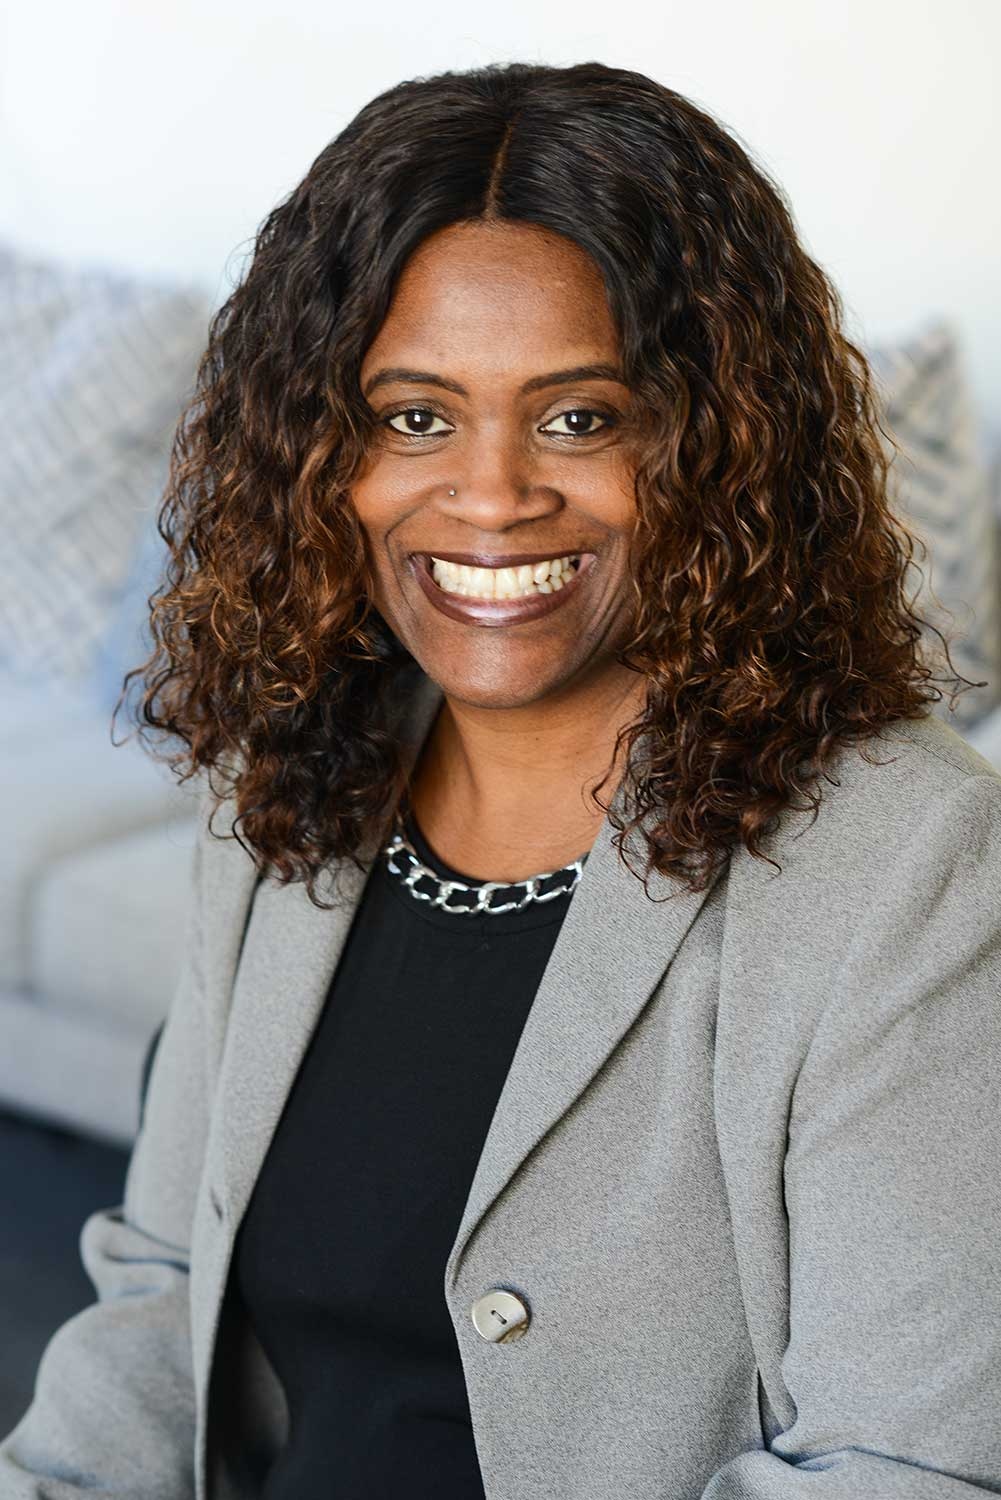 michelle-byrd-chicago-compass-counselor-alcohol-young-adult-3